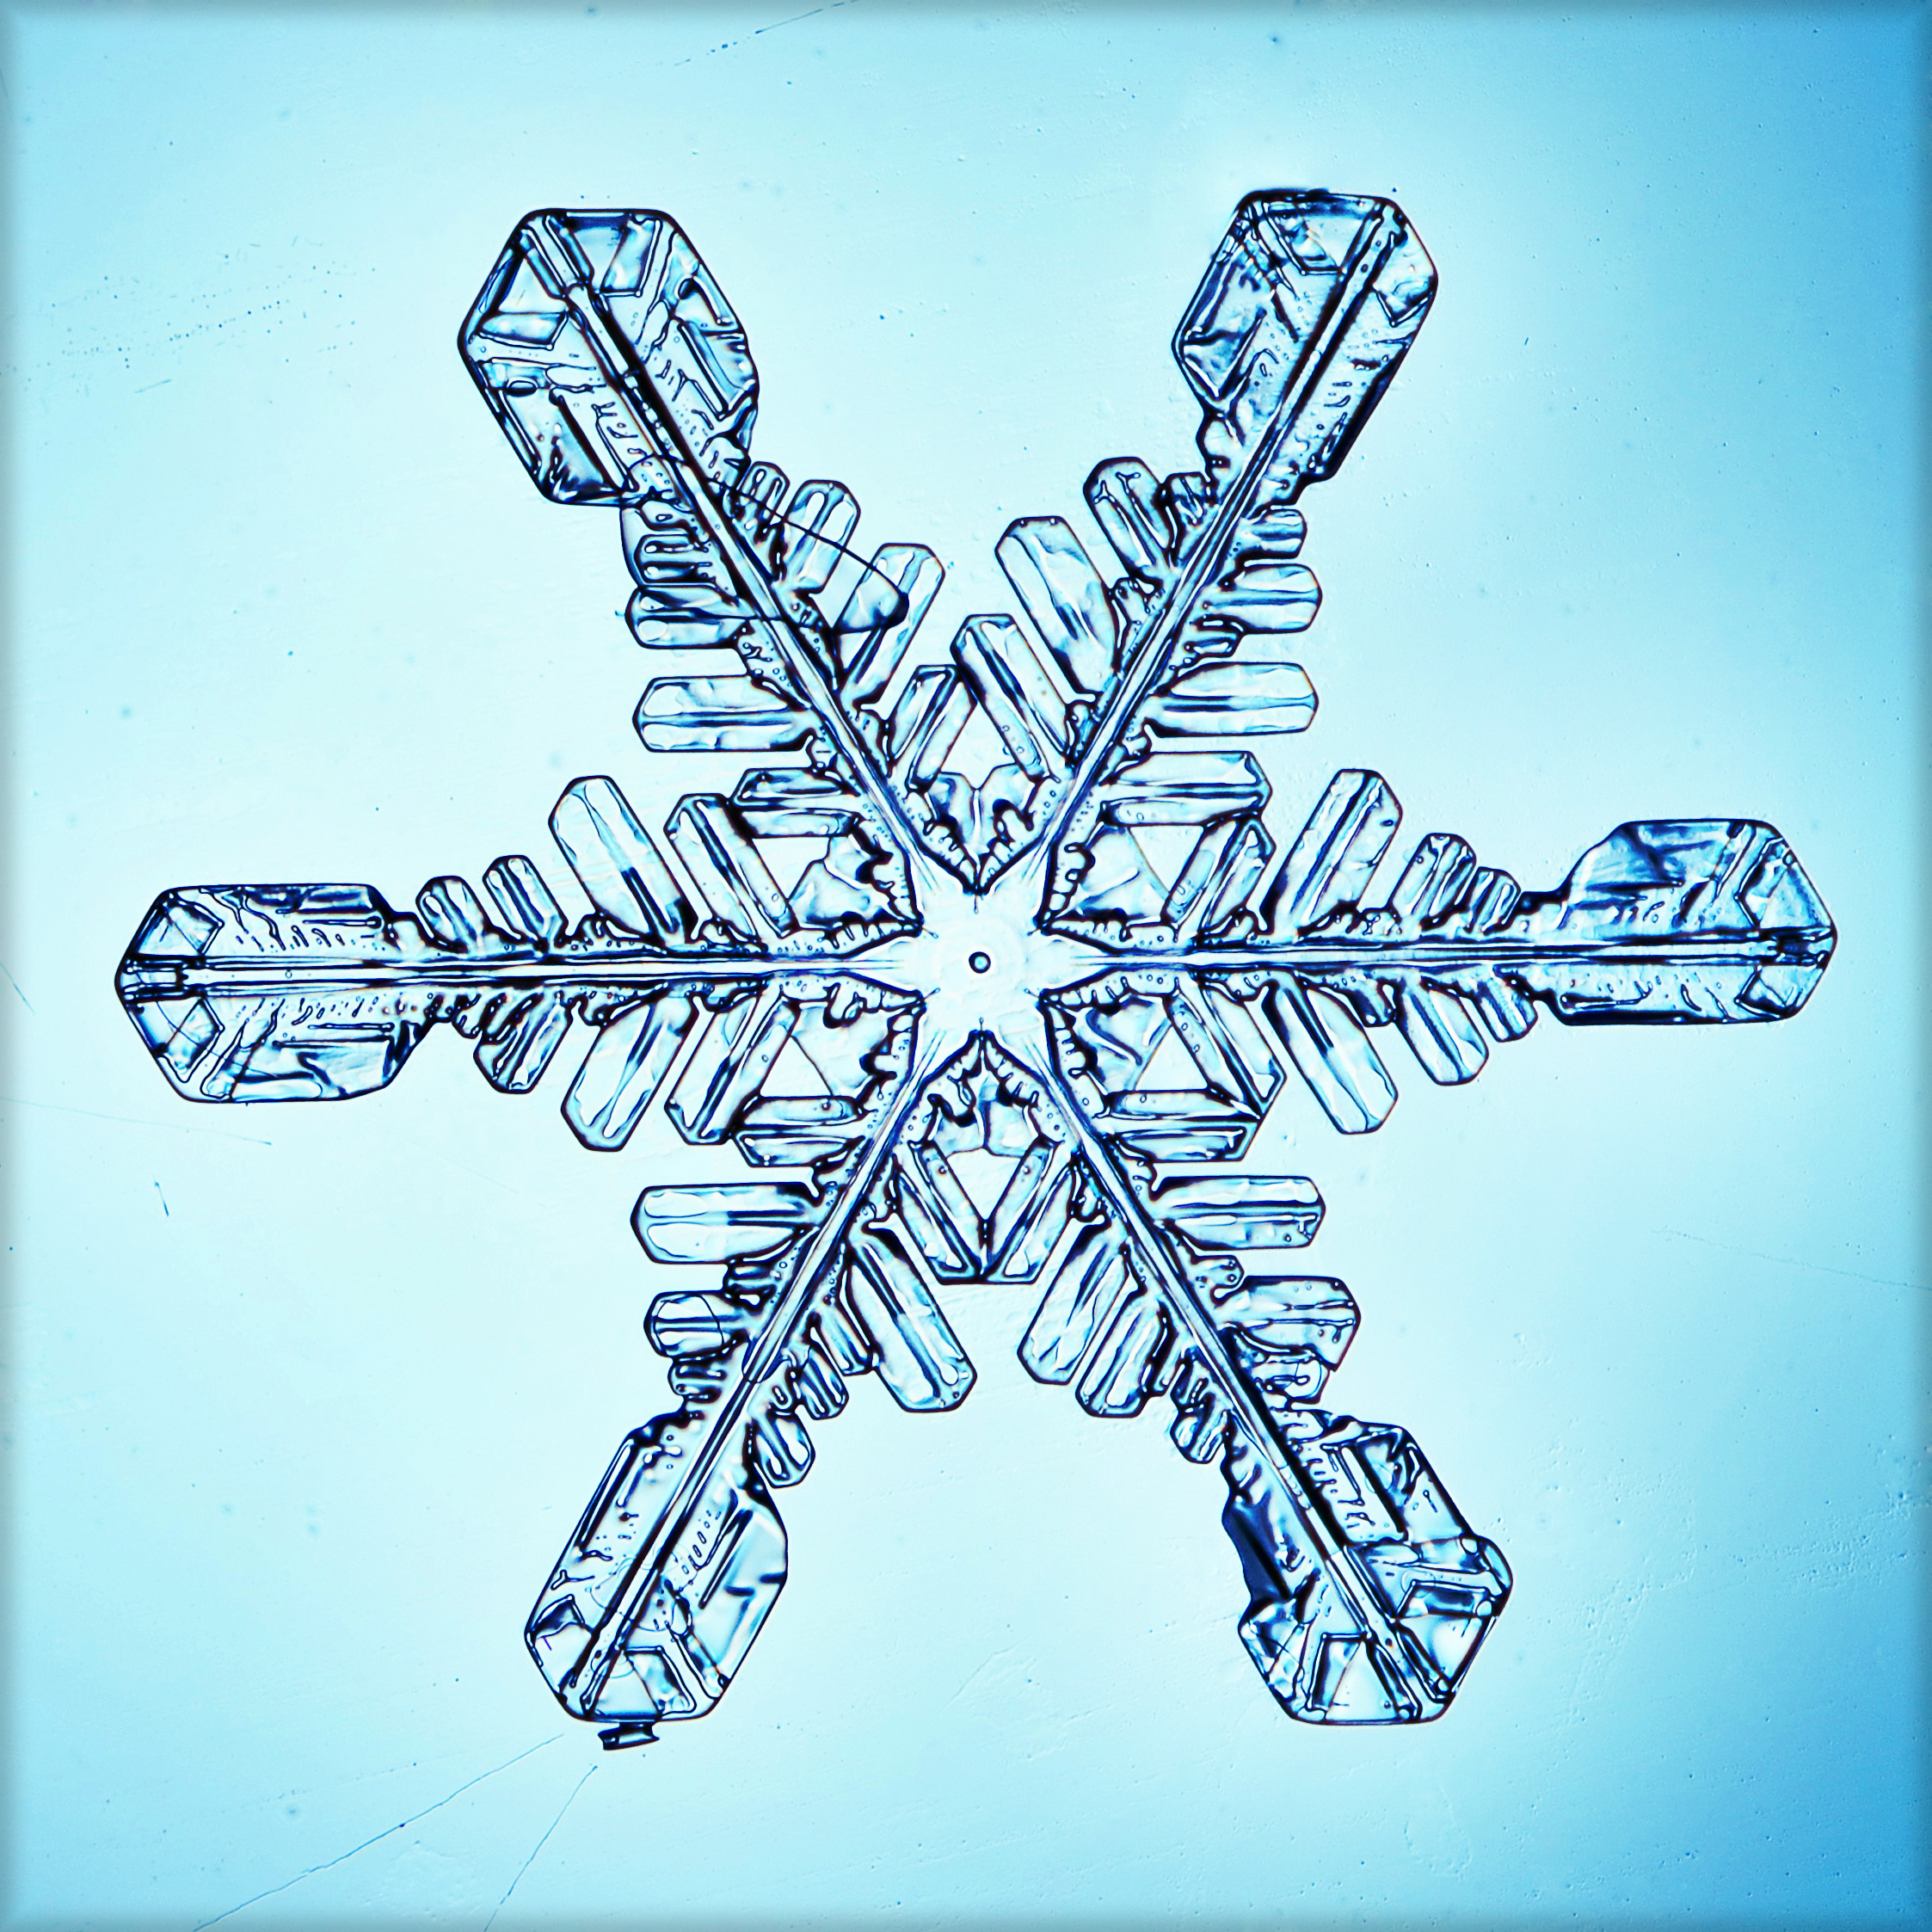 Caption: Snowflake science